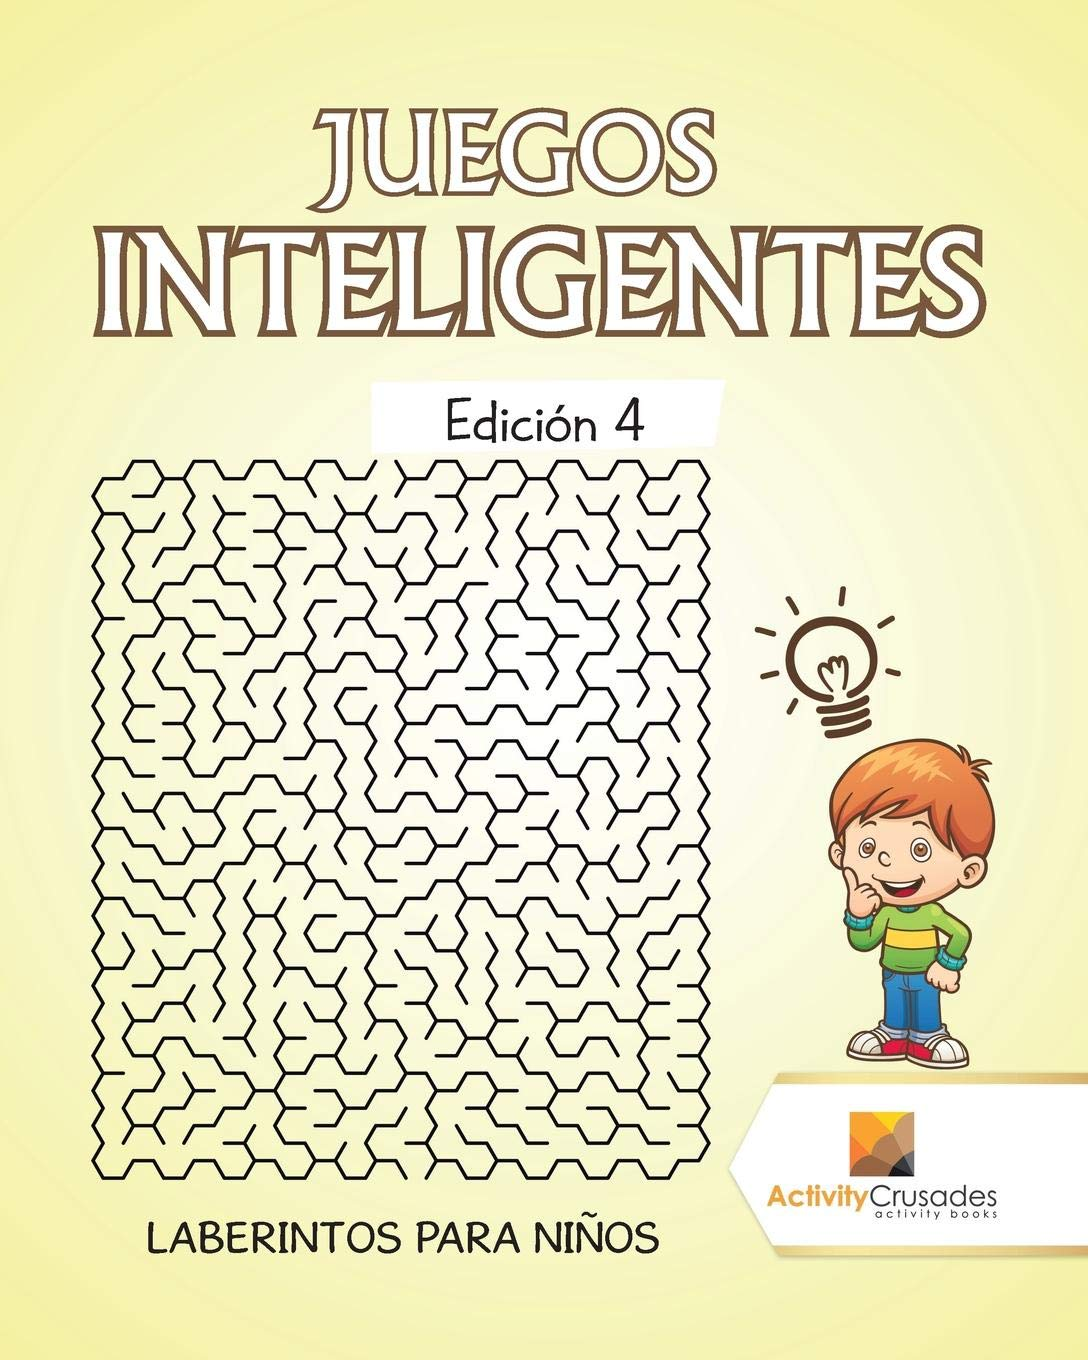 Juegos Inteligentes Edición 4 : Laberintos Para Niños (Spanish Edition): Activity Crusades: 9780228218326: Amazon.com: Books